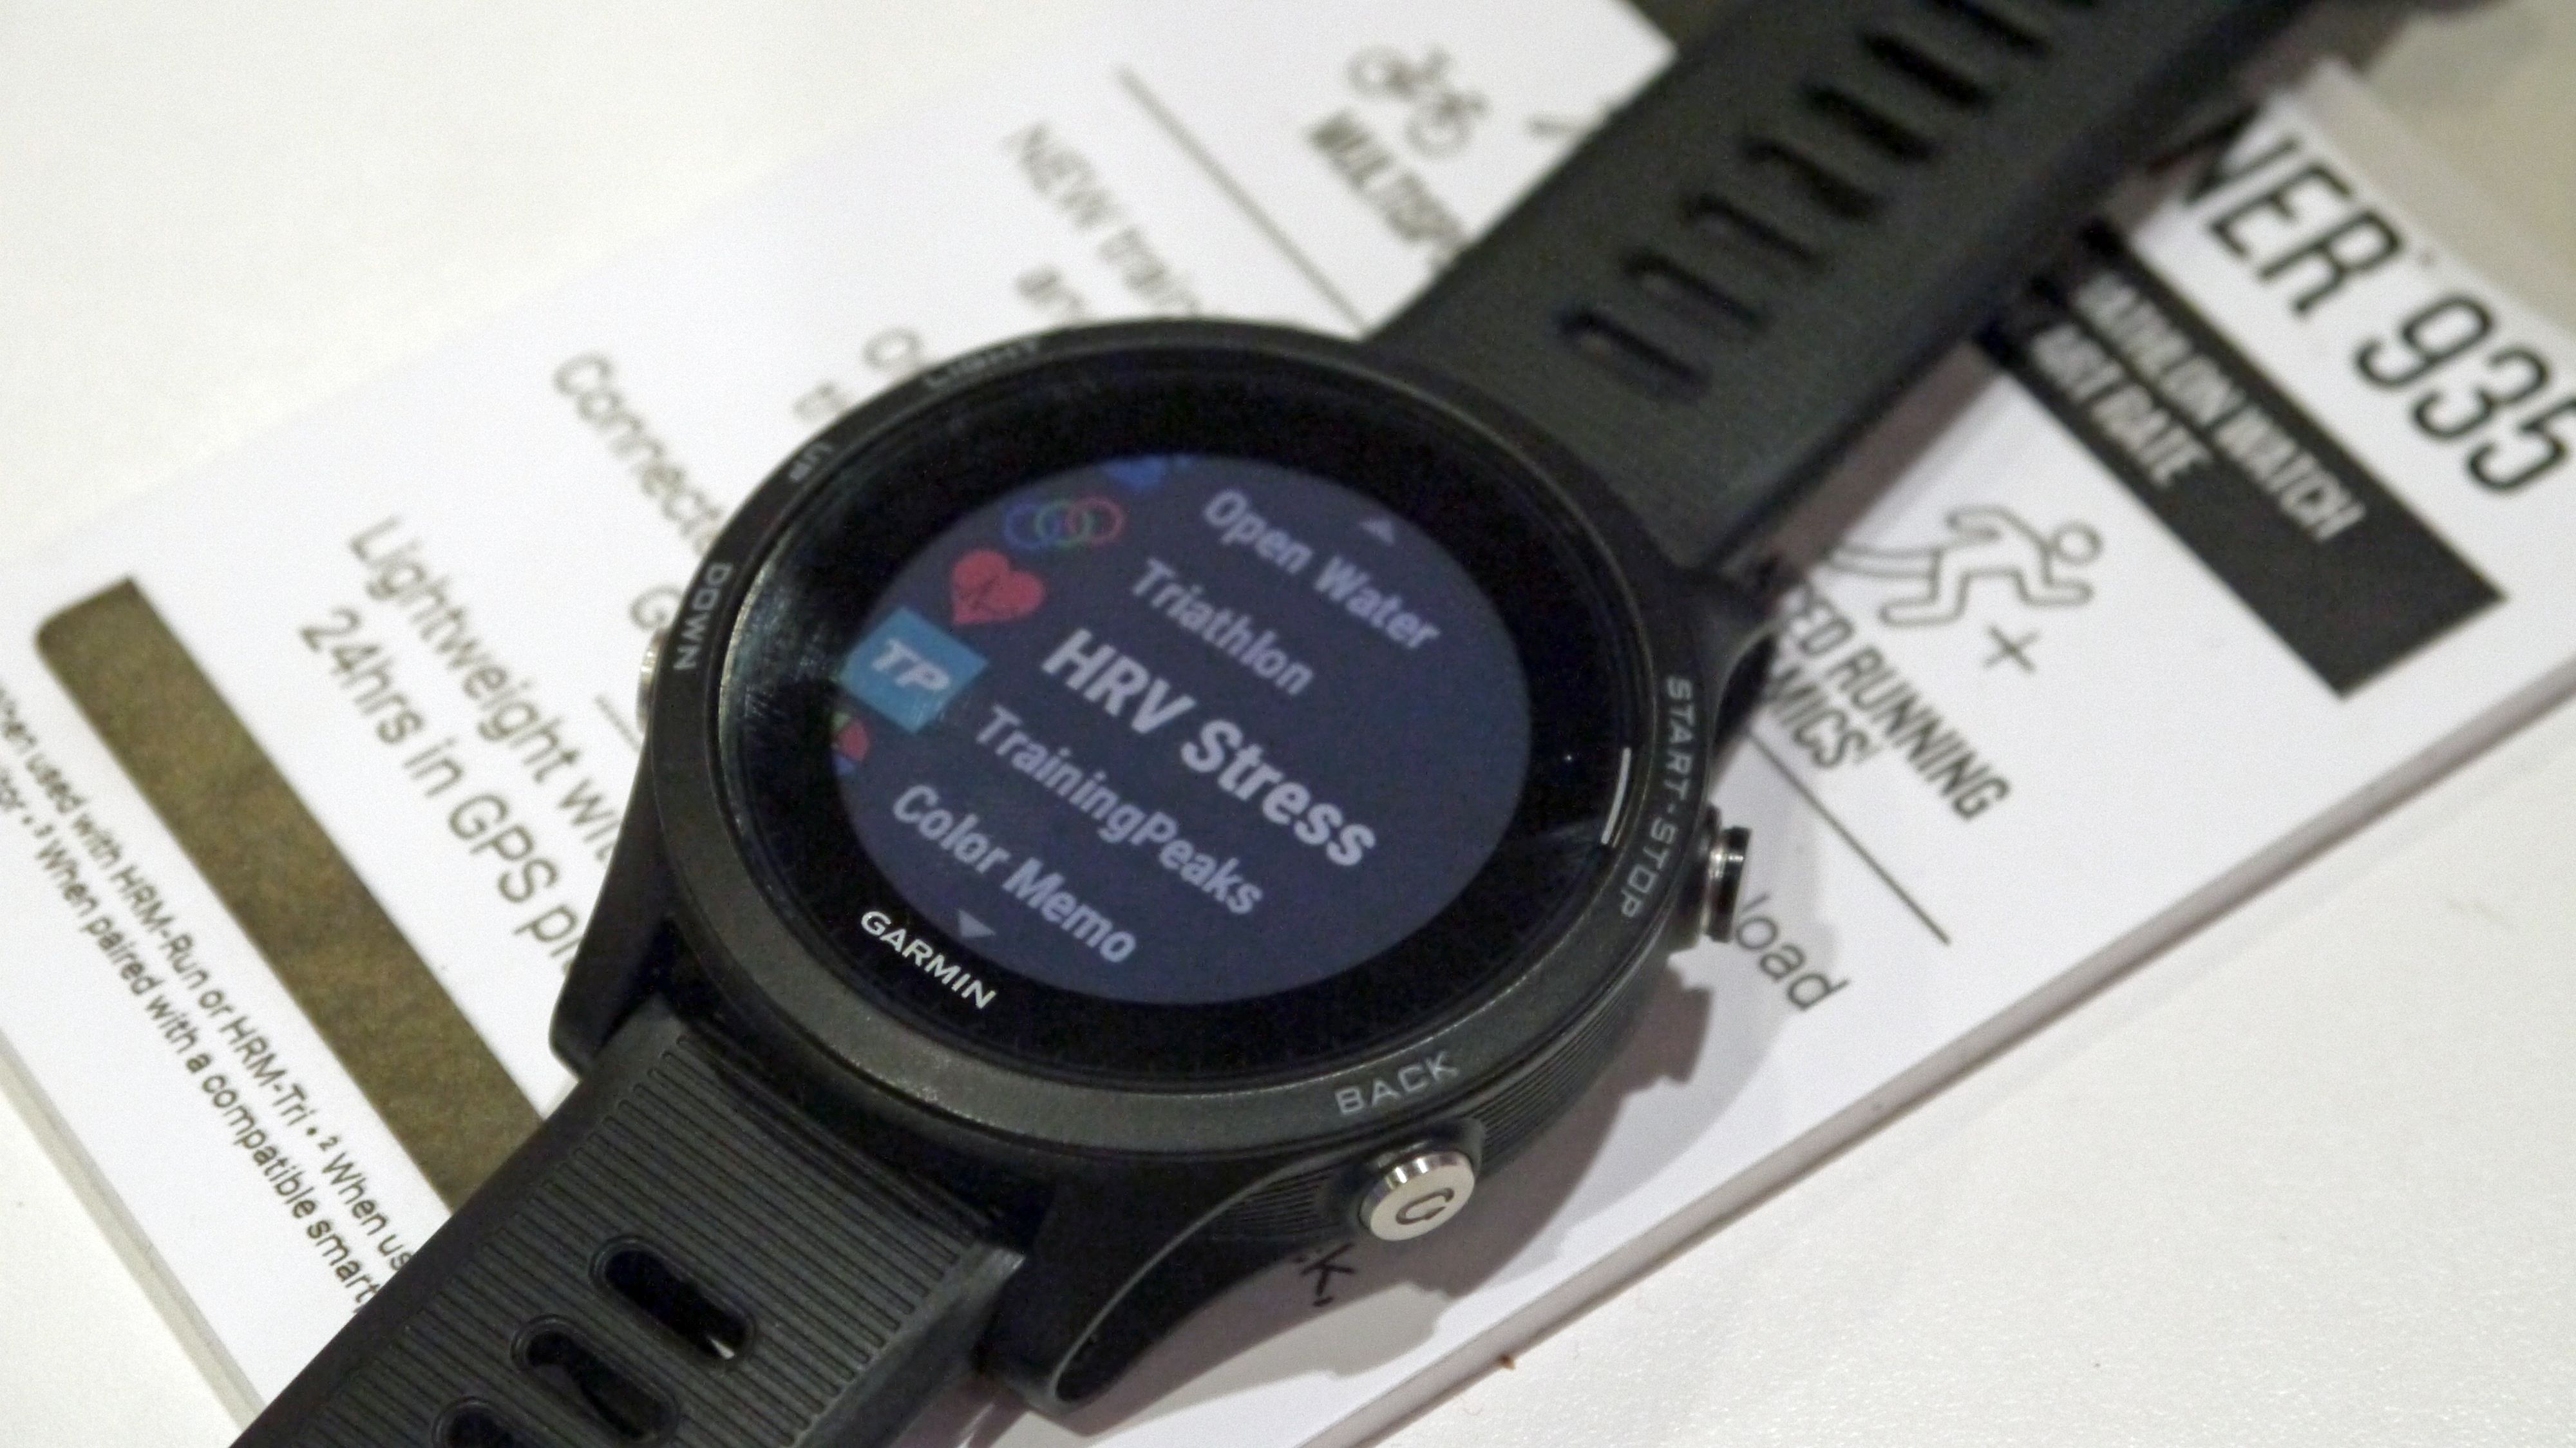 The Garmin 935 is something of a watch that straddles two worlds the insane power of the Fenix 5 and the sleek lines of the less ostentatio